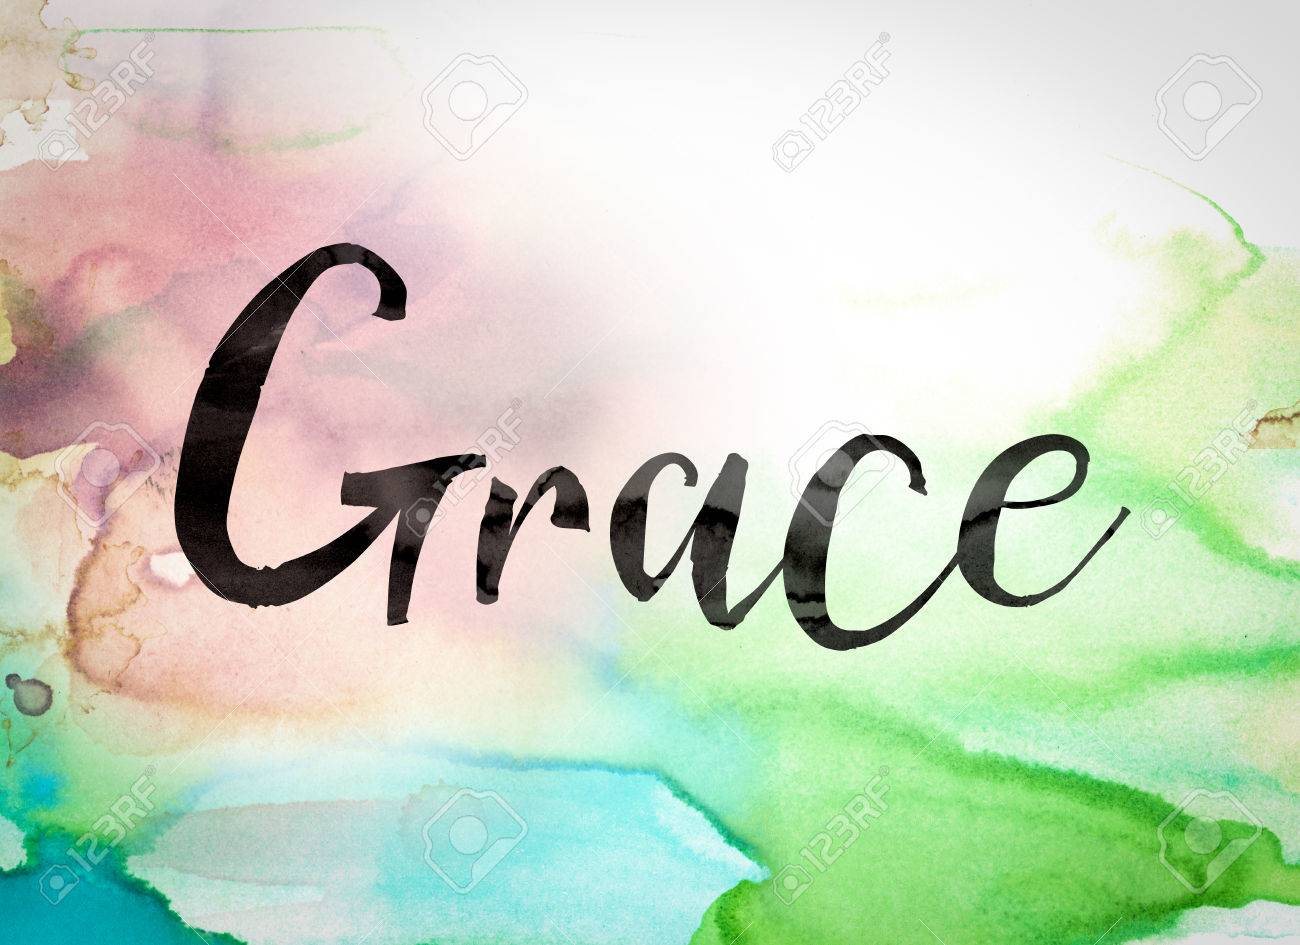 """The word """"Grace"""" written in black paint on a colorful watercolor washed background. - 55678148"""